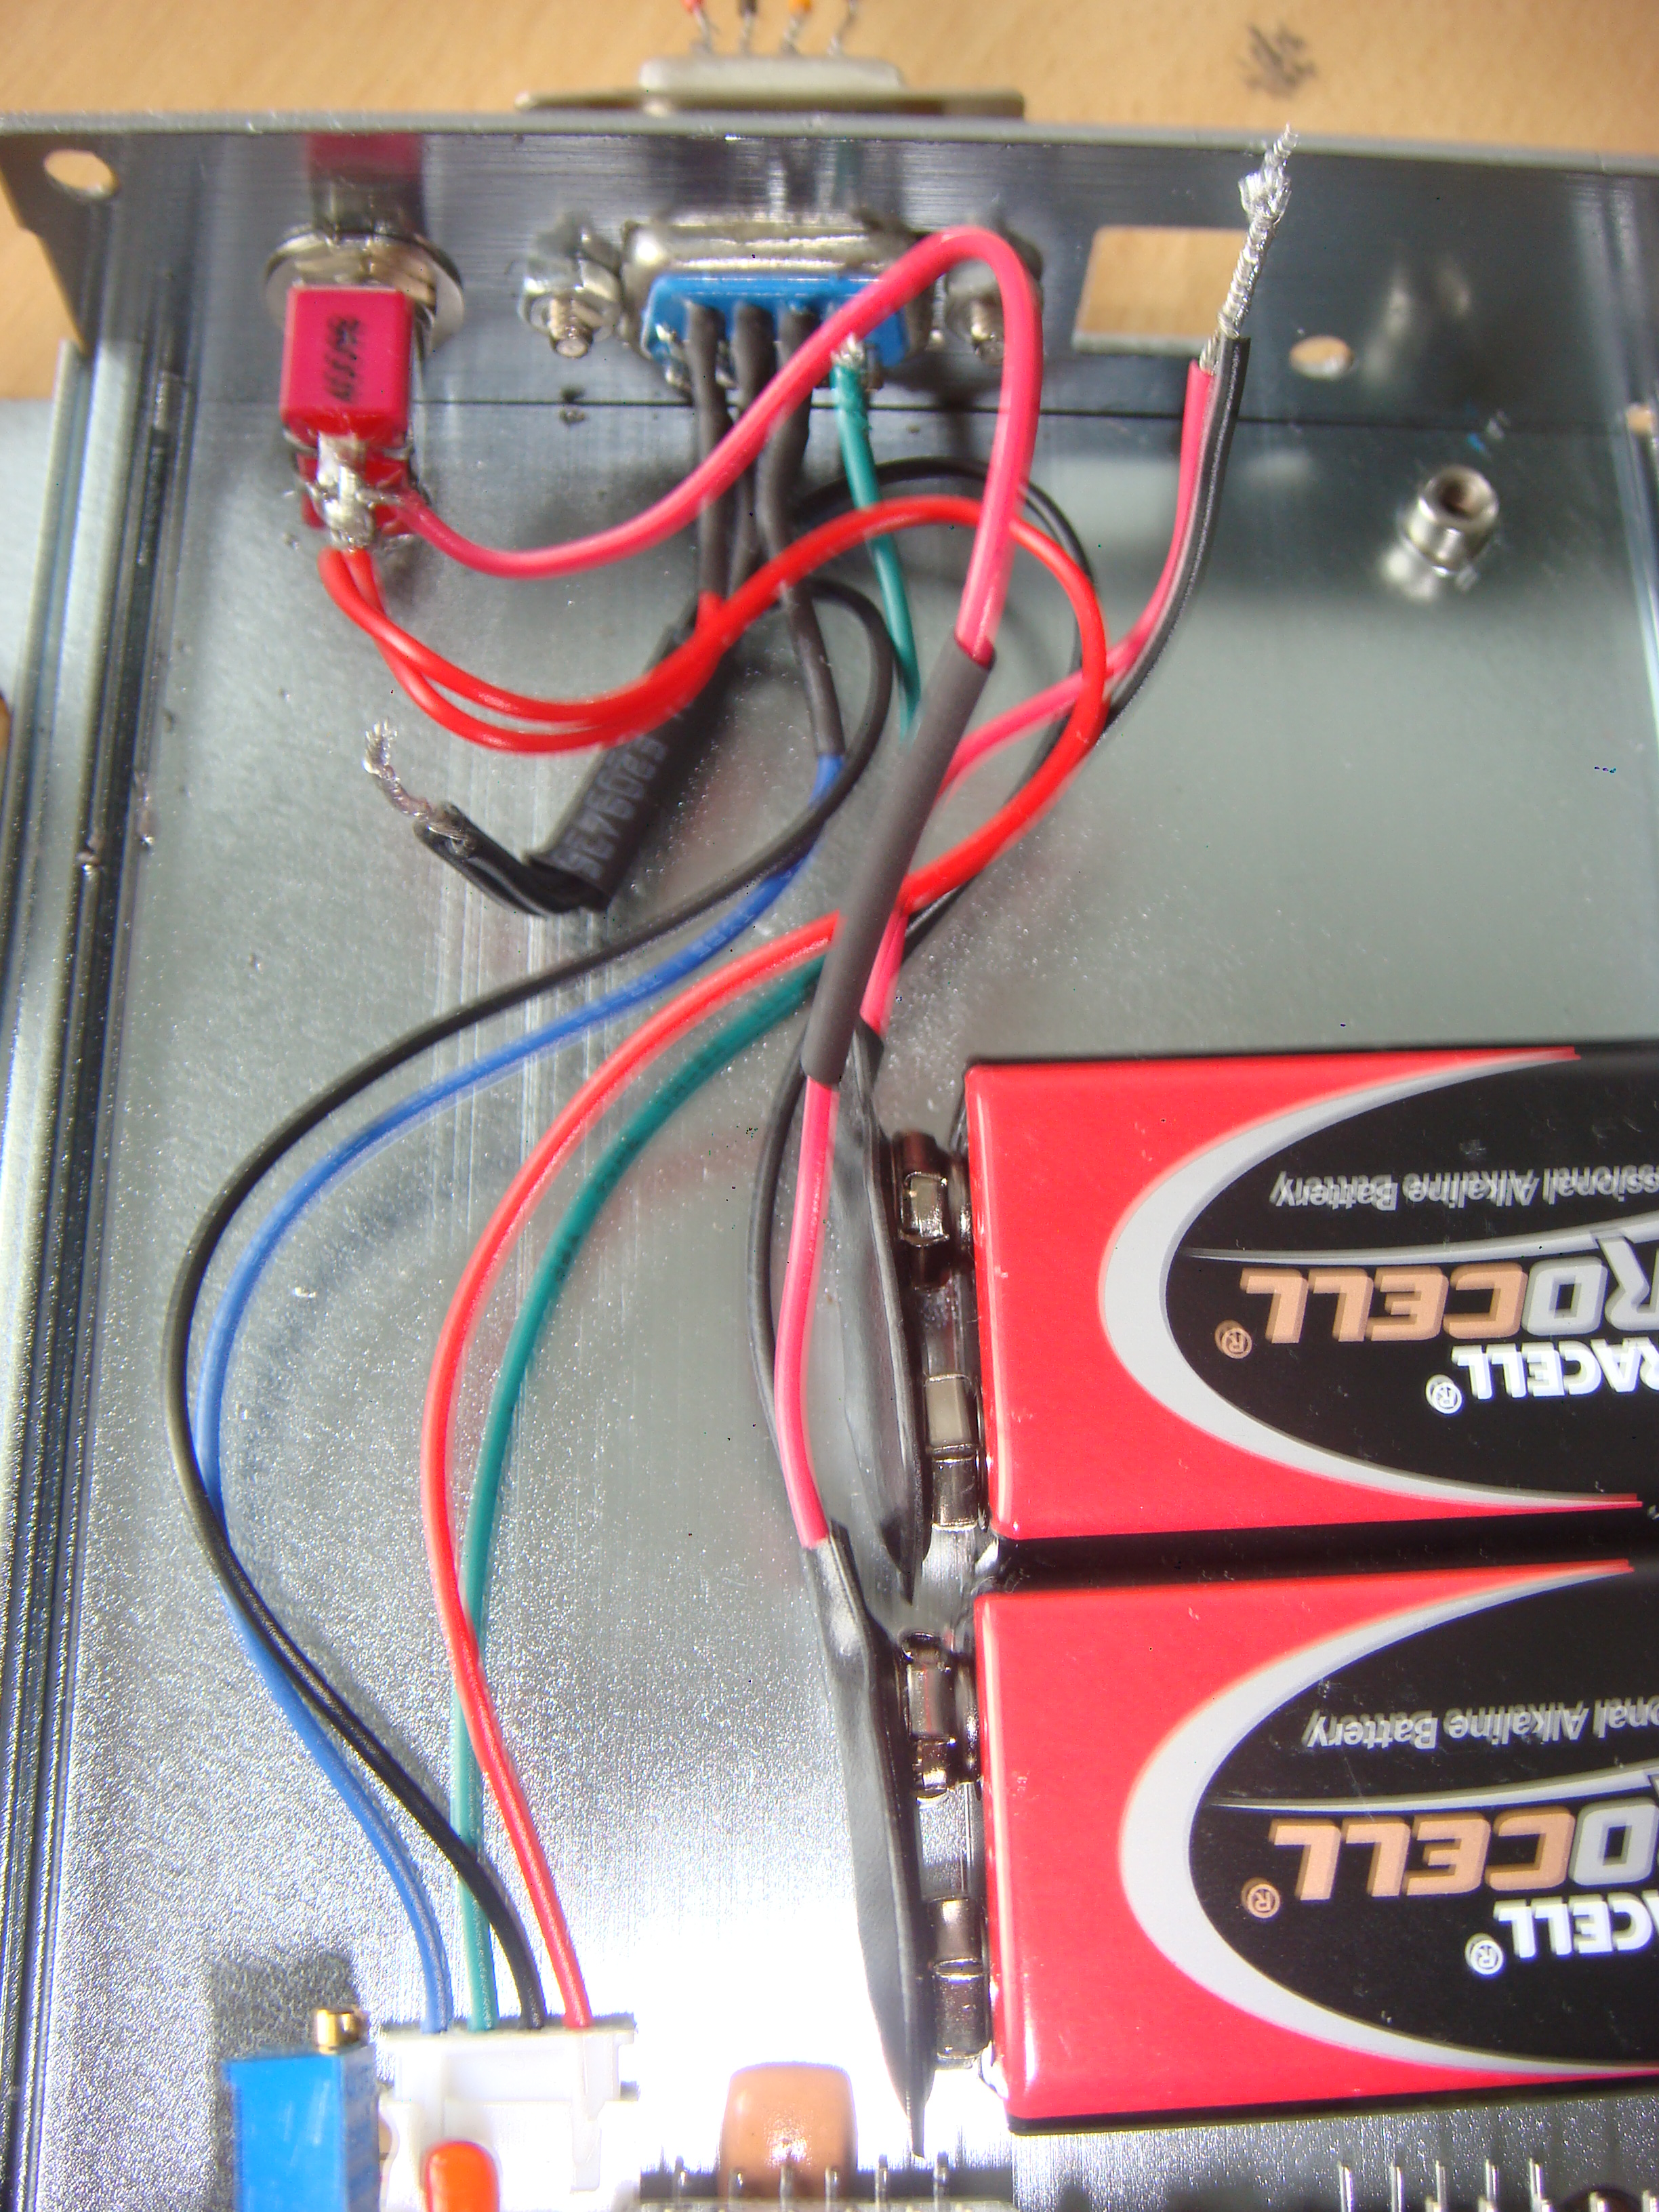 Ophir Power Meter And Power Head : Help needed with a ophir power meter laser pointers